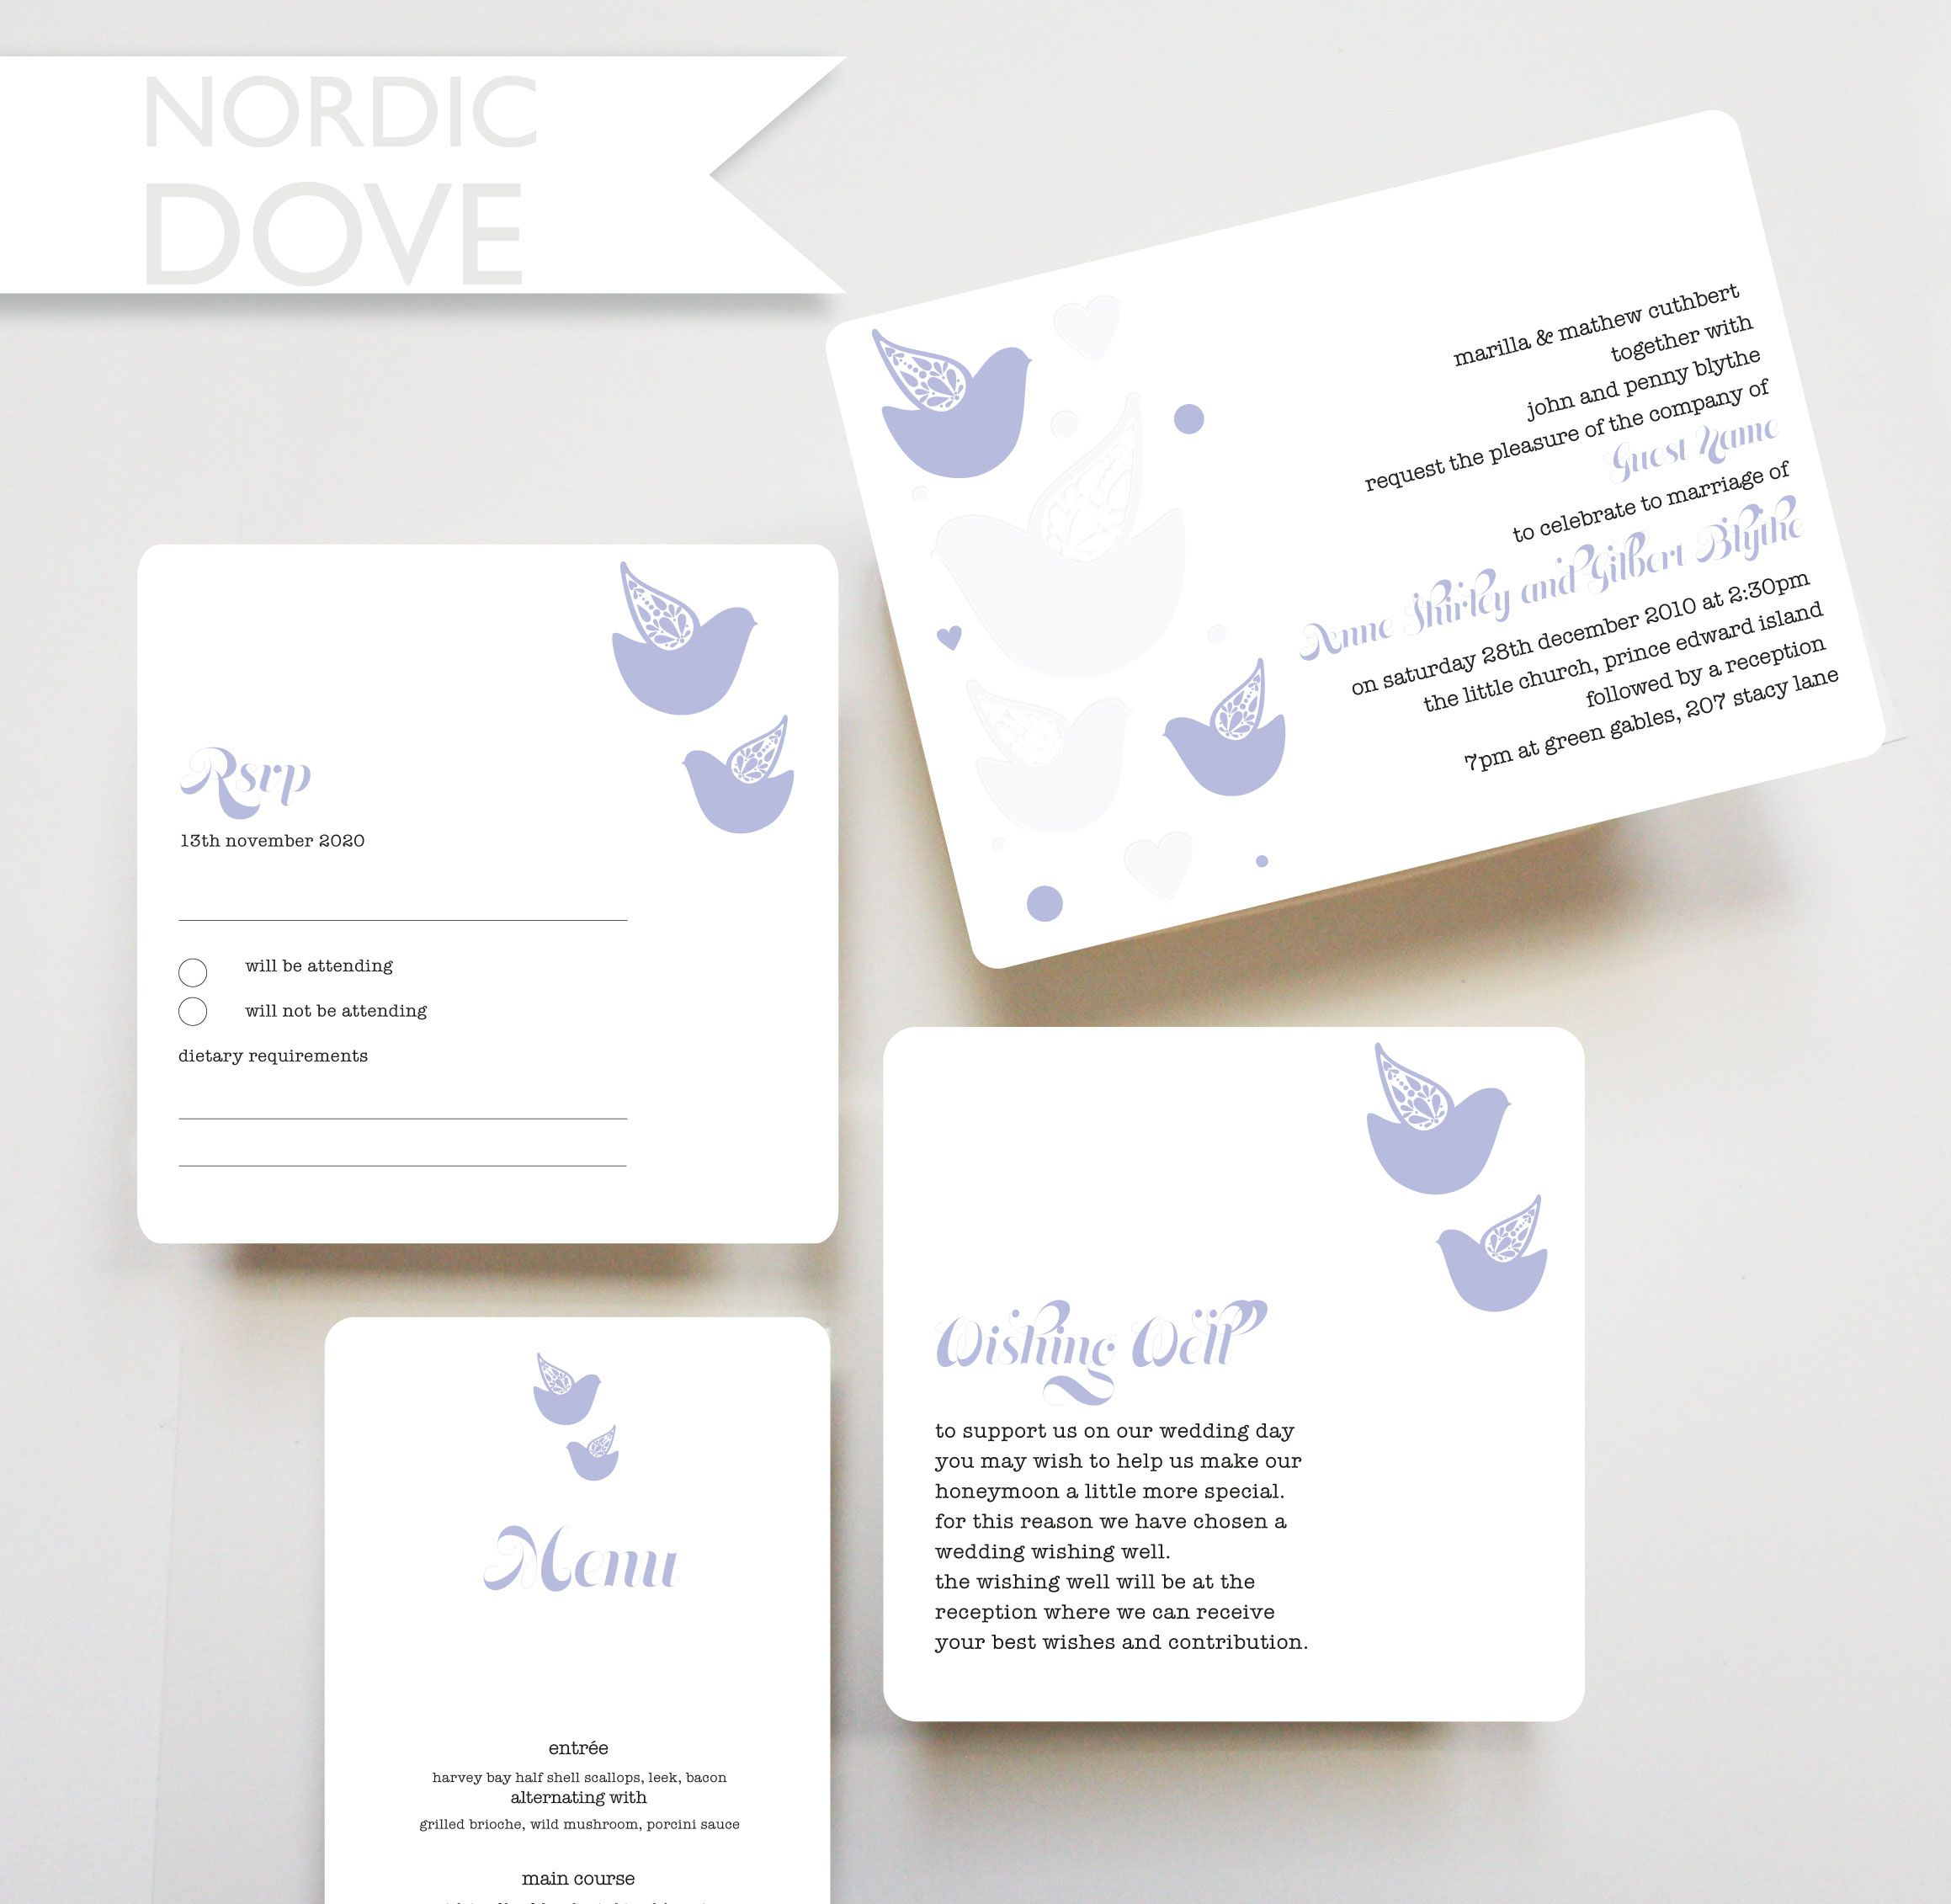 Nordic Dove, Invitation, RSVP Card, Wishing Well Card